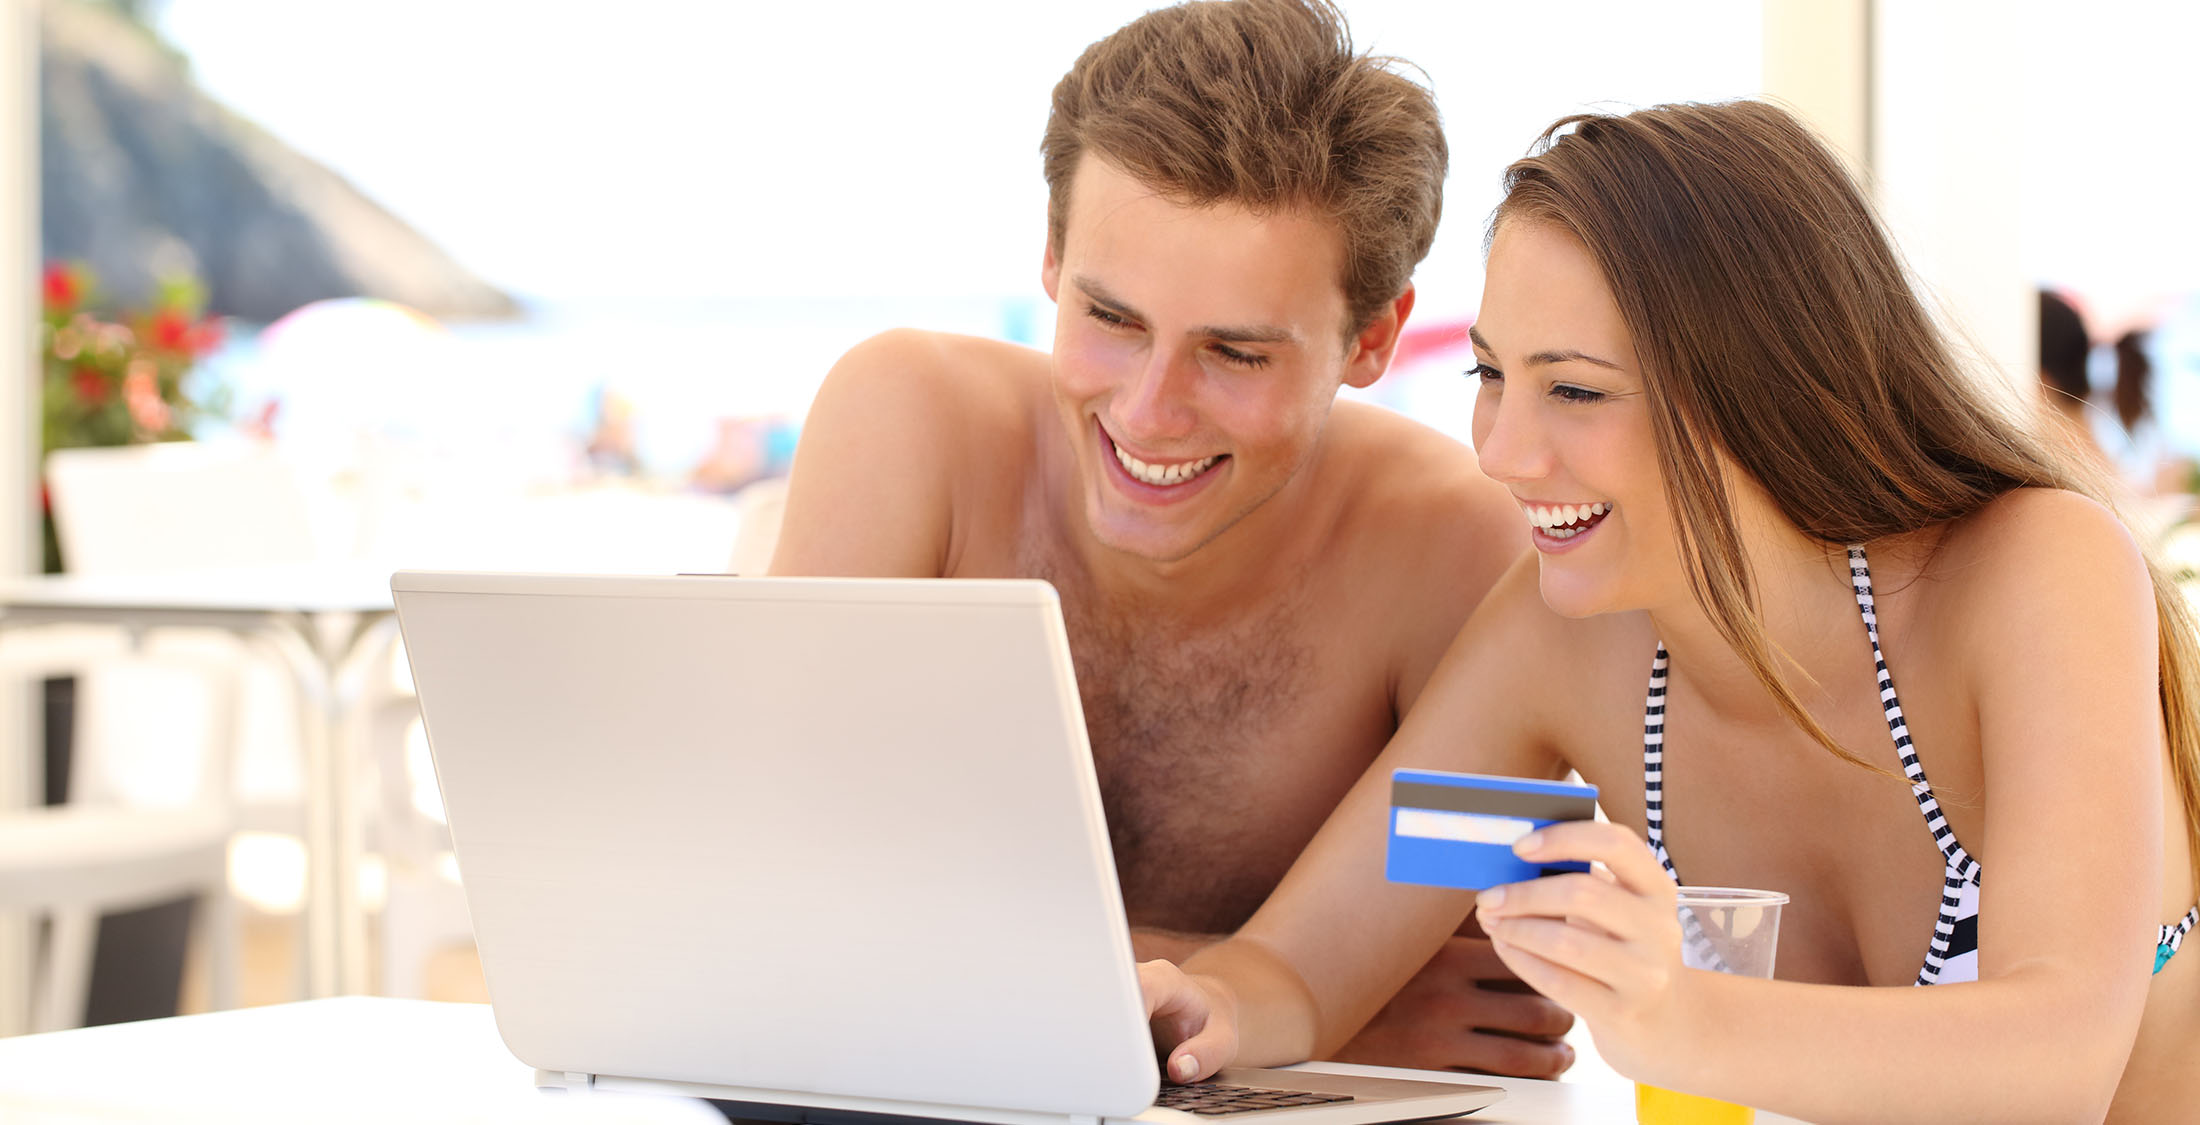 couple looking at laptop at resort